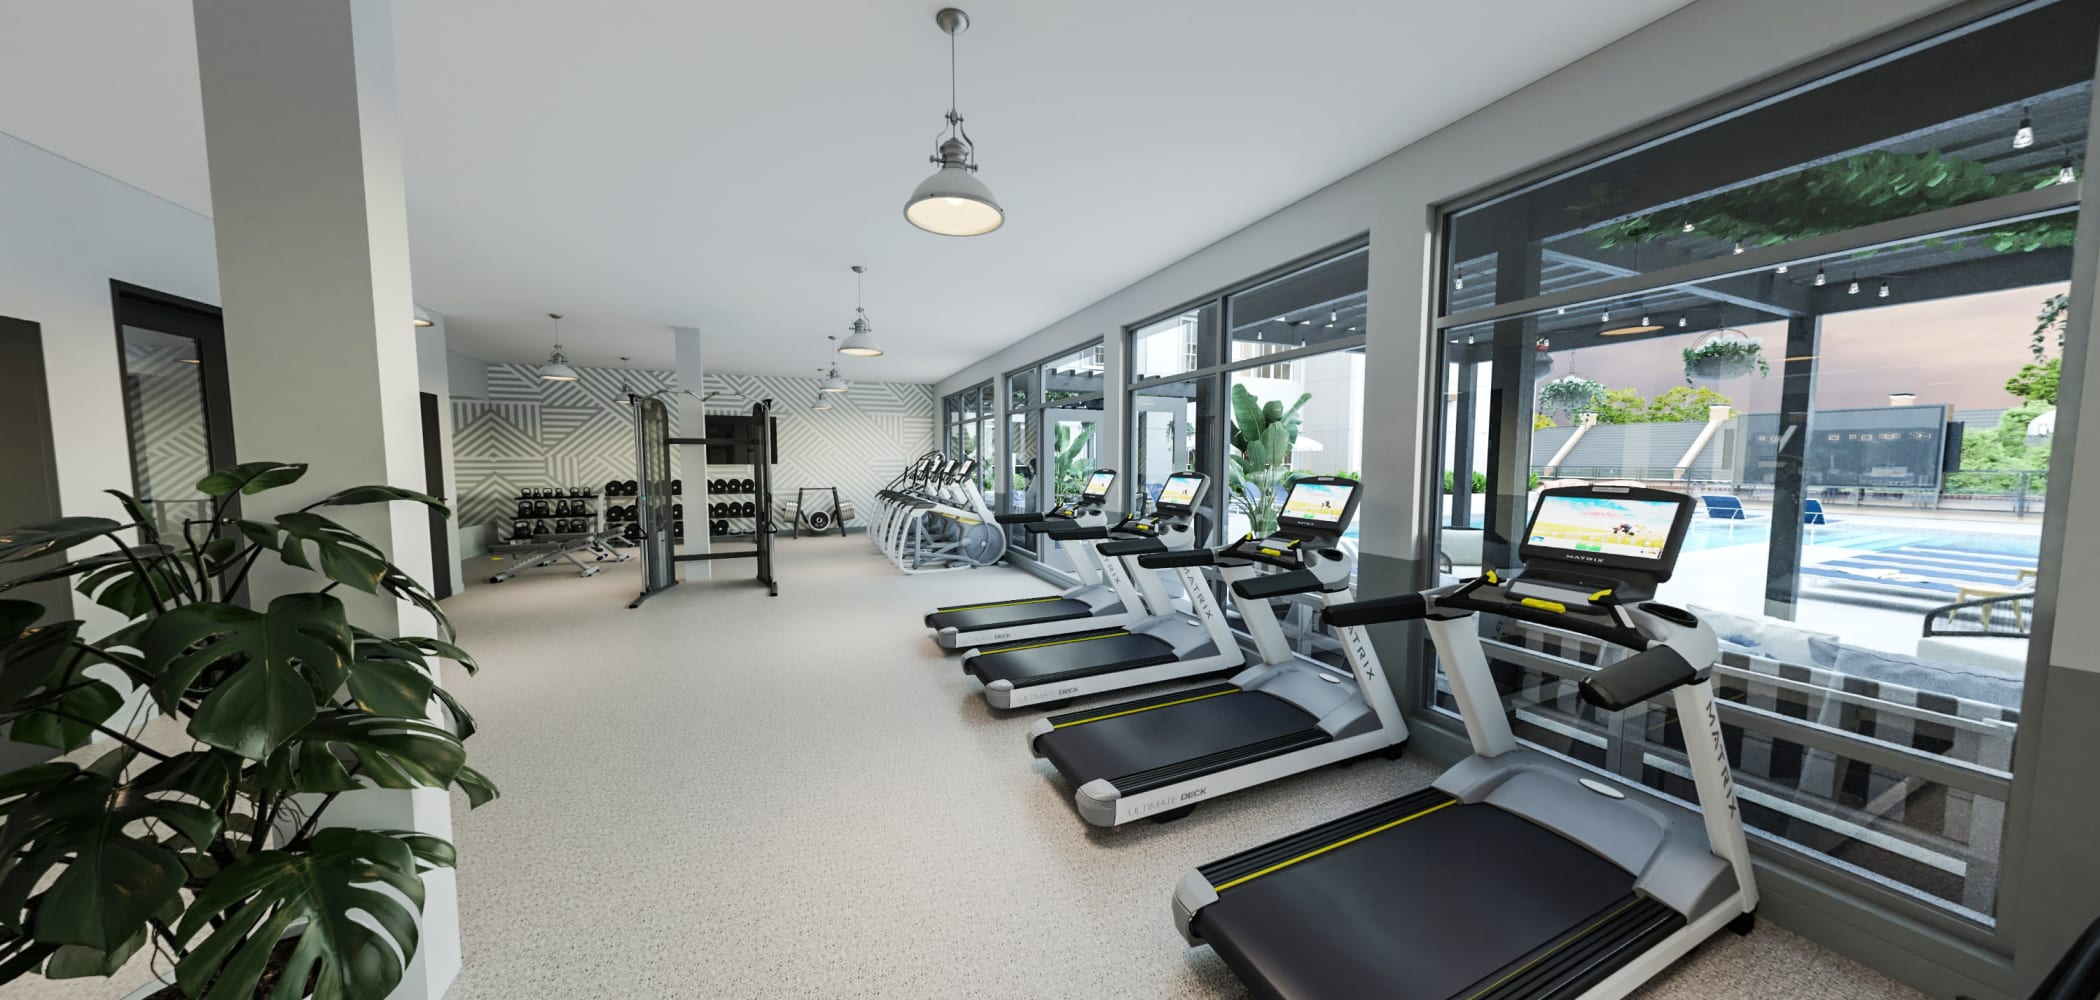 Fully equipped fitness center at HERE Tuscaloosa in Tuscaloosa, Alabama